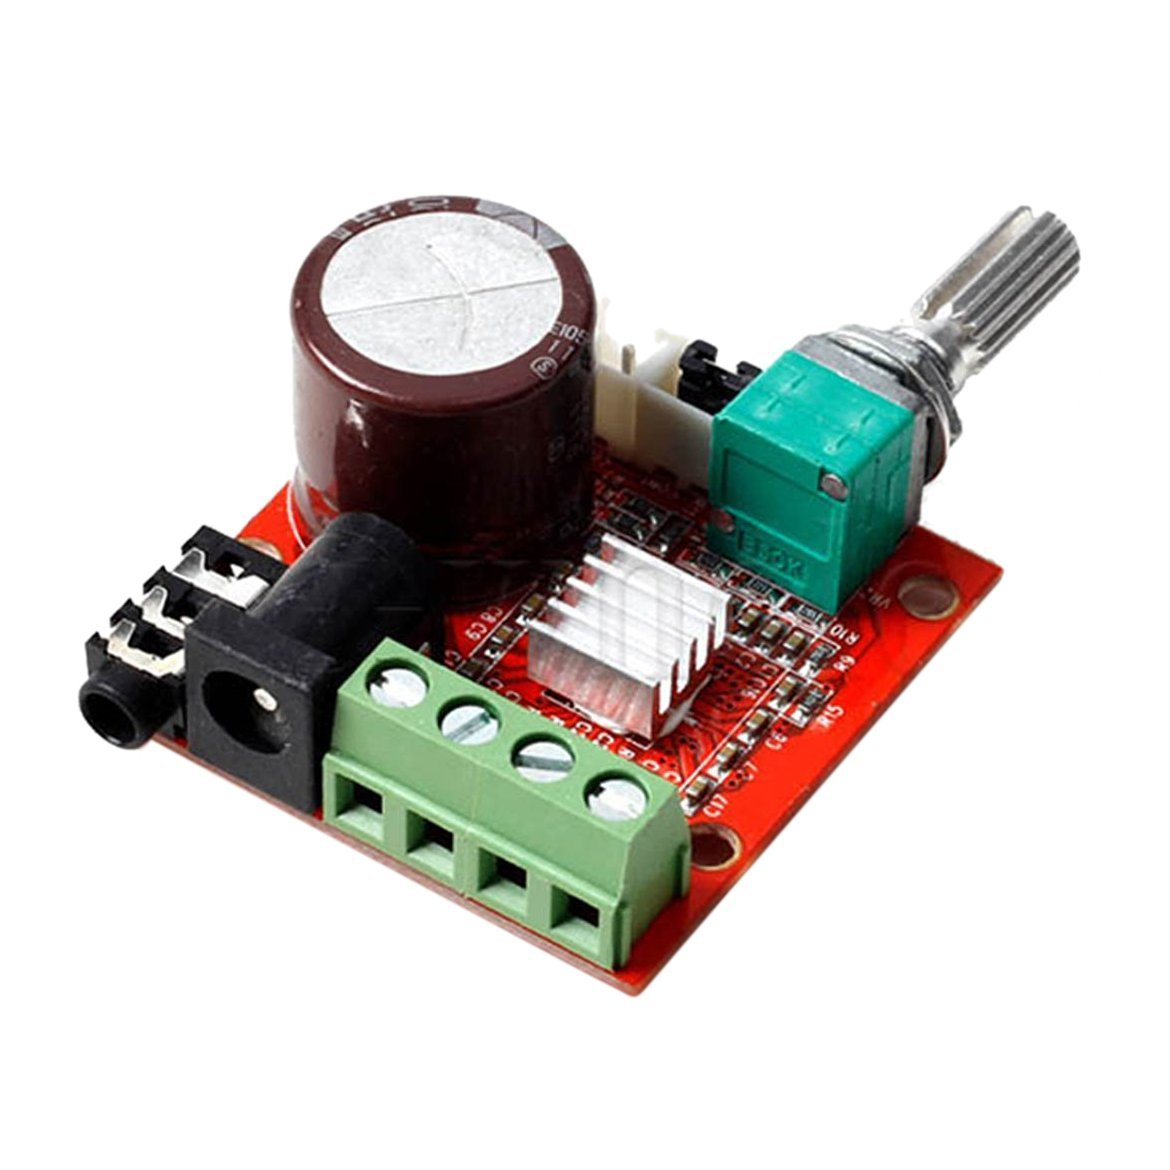 Cheap Hi Fi Audio Amplifier Find Deals On 20w Power Circuit Based Tda2040 Get Quotations Board Sodialr Mini Stereo 2x10w Pam8610